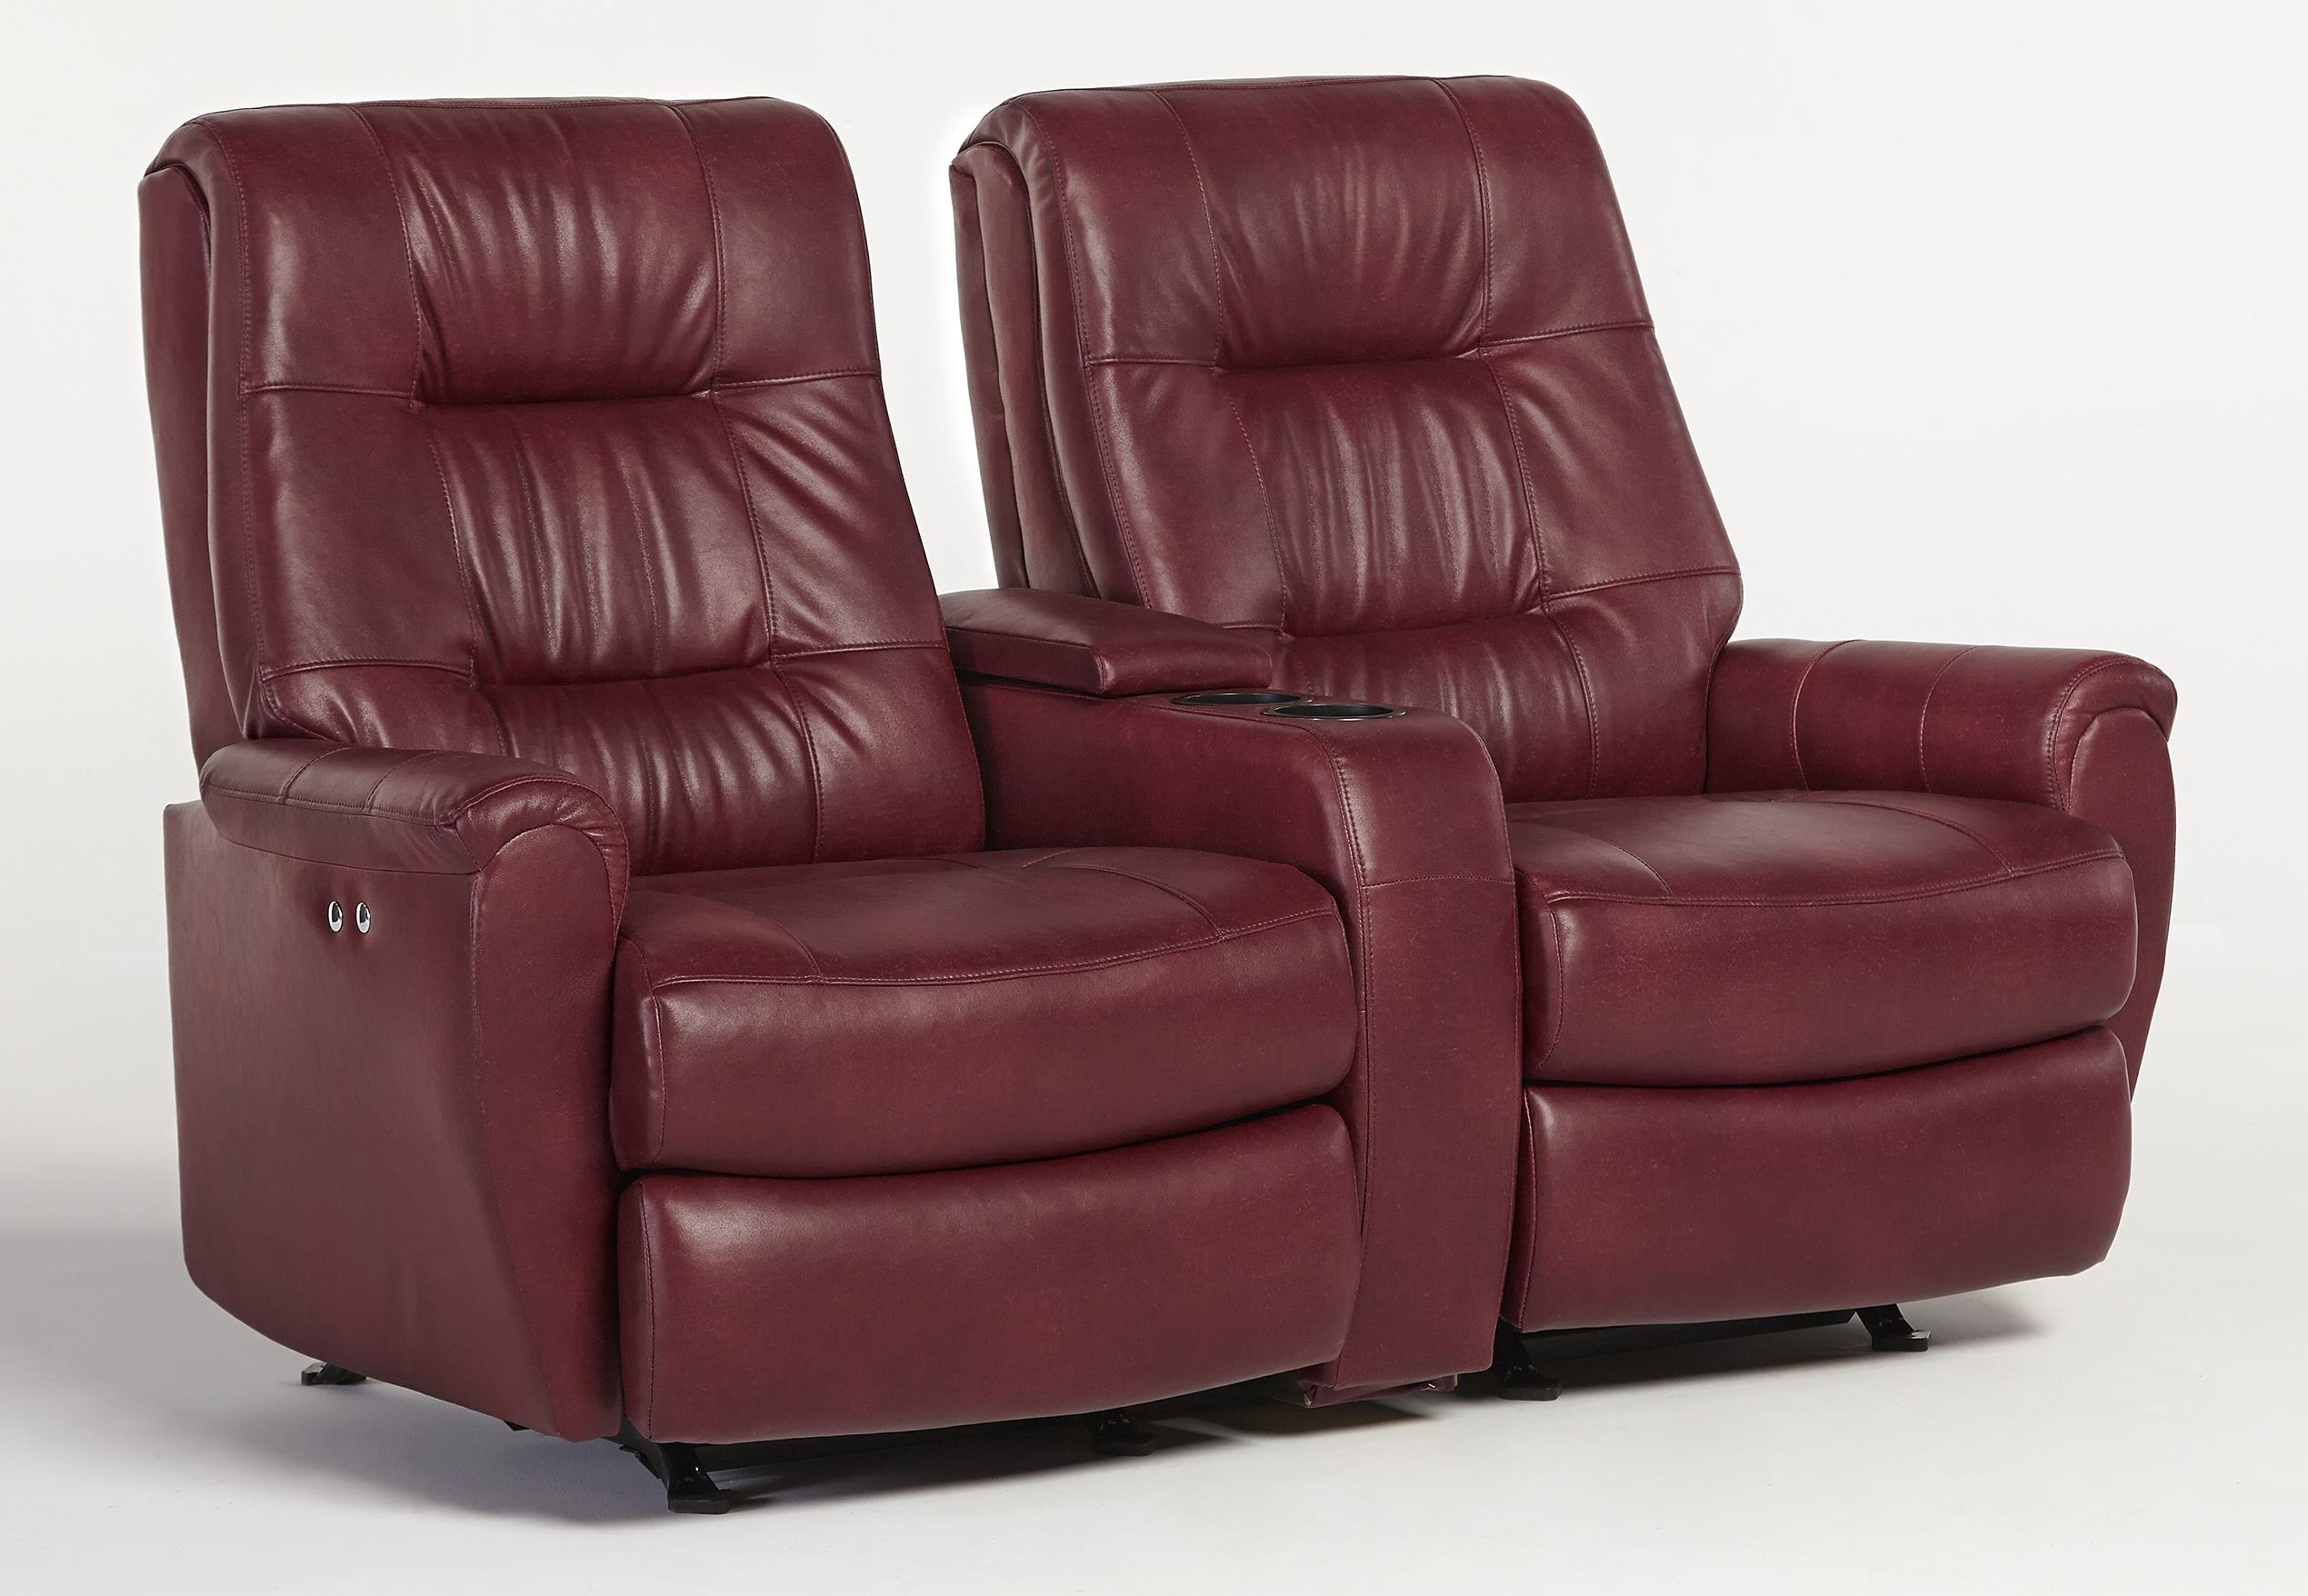 Best Home Furnishings Felicia Small Scale Reclining Space